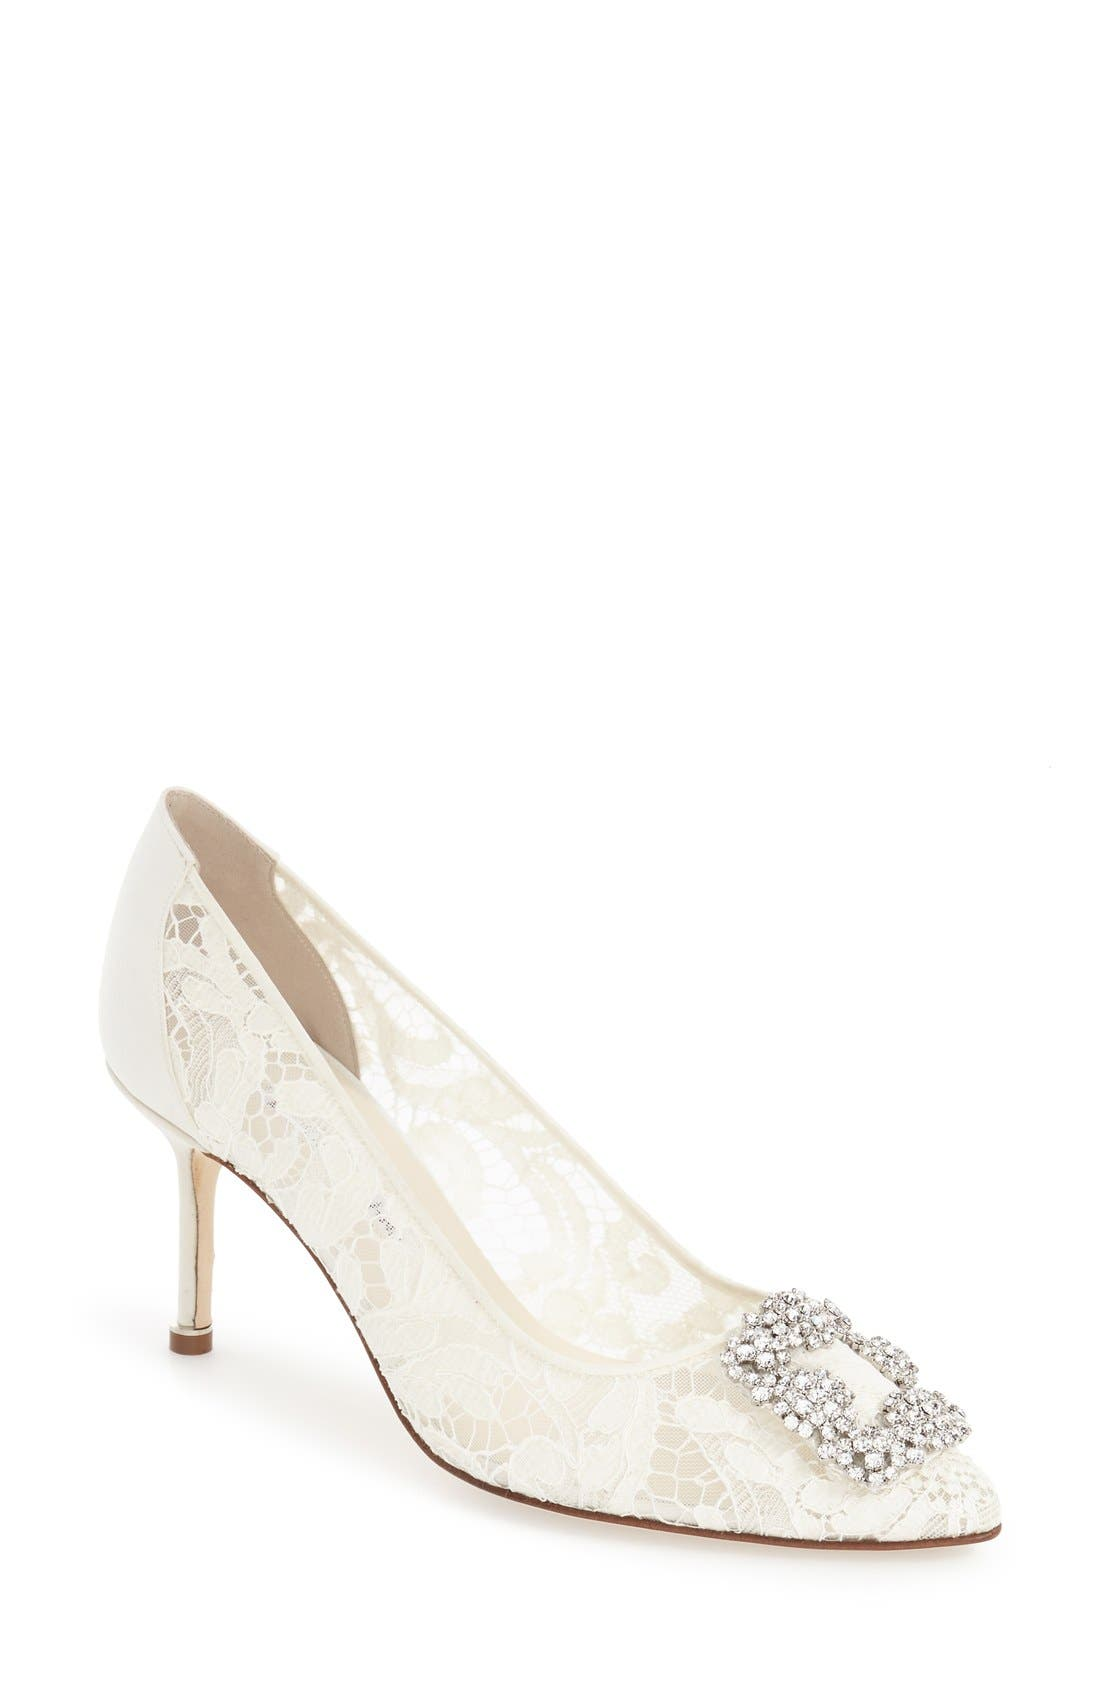 Manolo Blahnik 'Hangisi' Pointy Toe Lace Pump (Women)